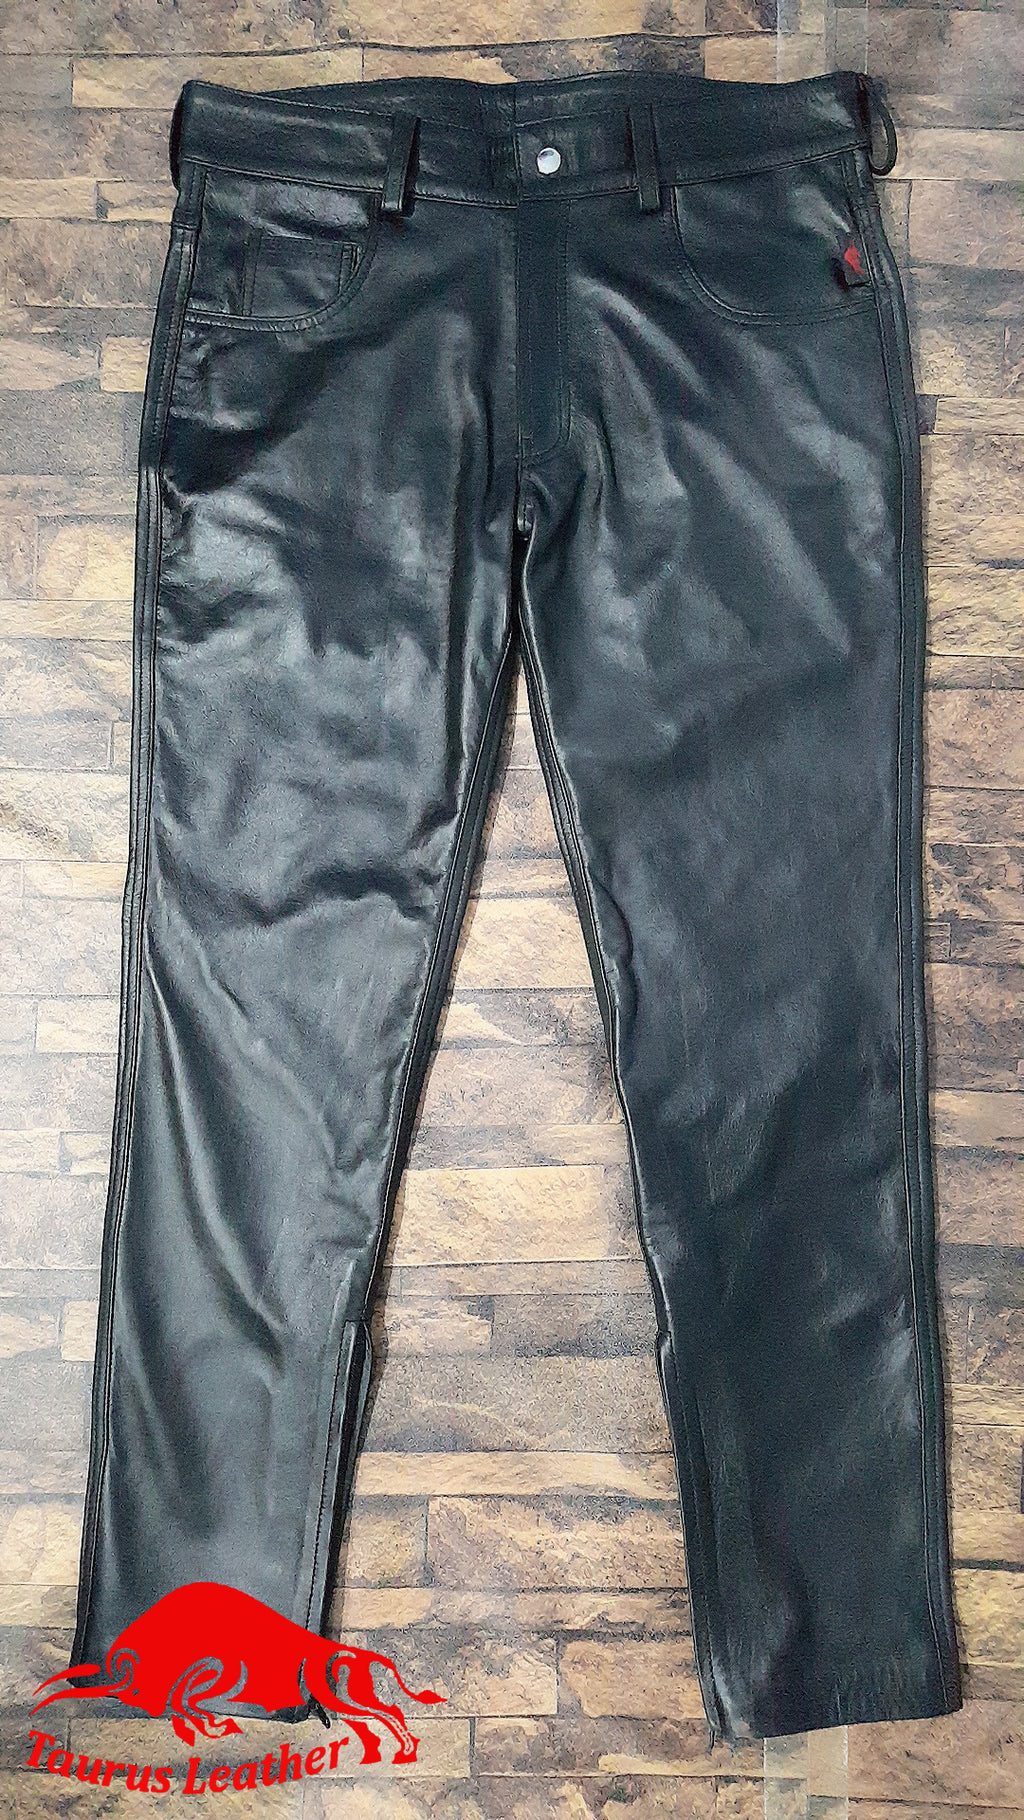 TAURUS LEATHER 501 Cow Leather Black Pant